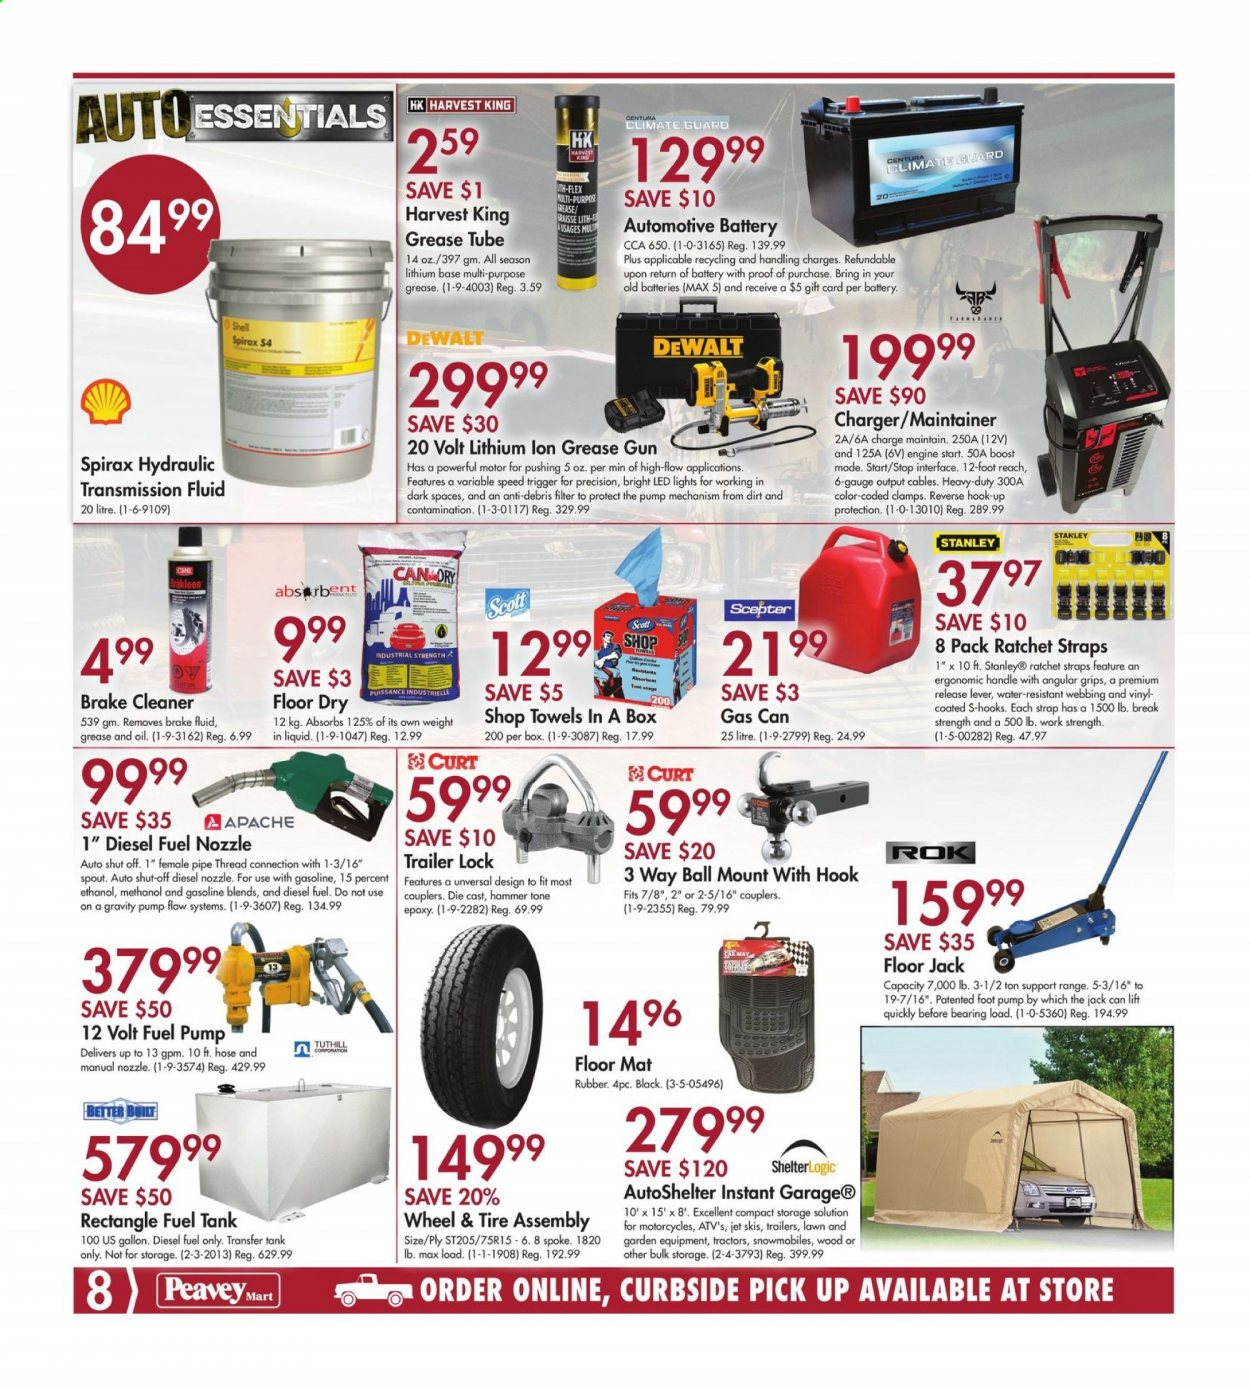 Peavey Mart Flyer August 13 2020 August 19 2020 Page 8 Canadian Flyers